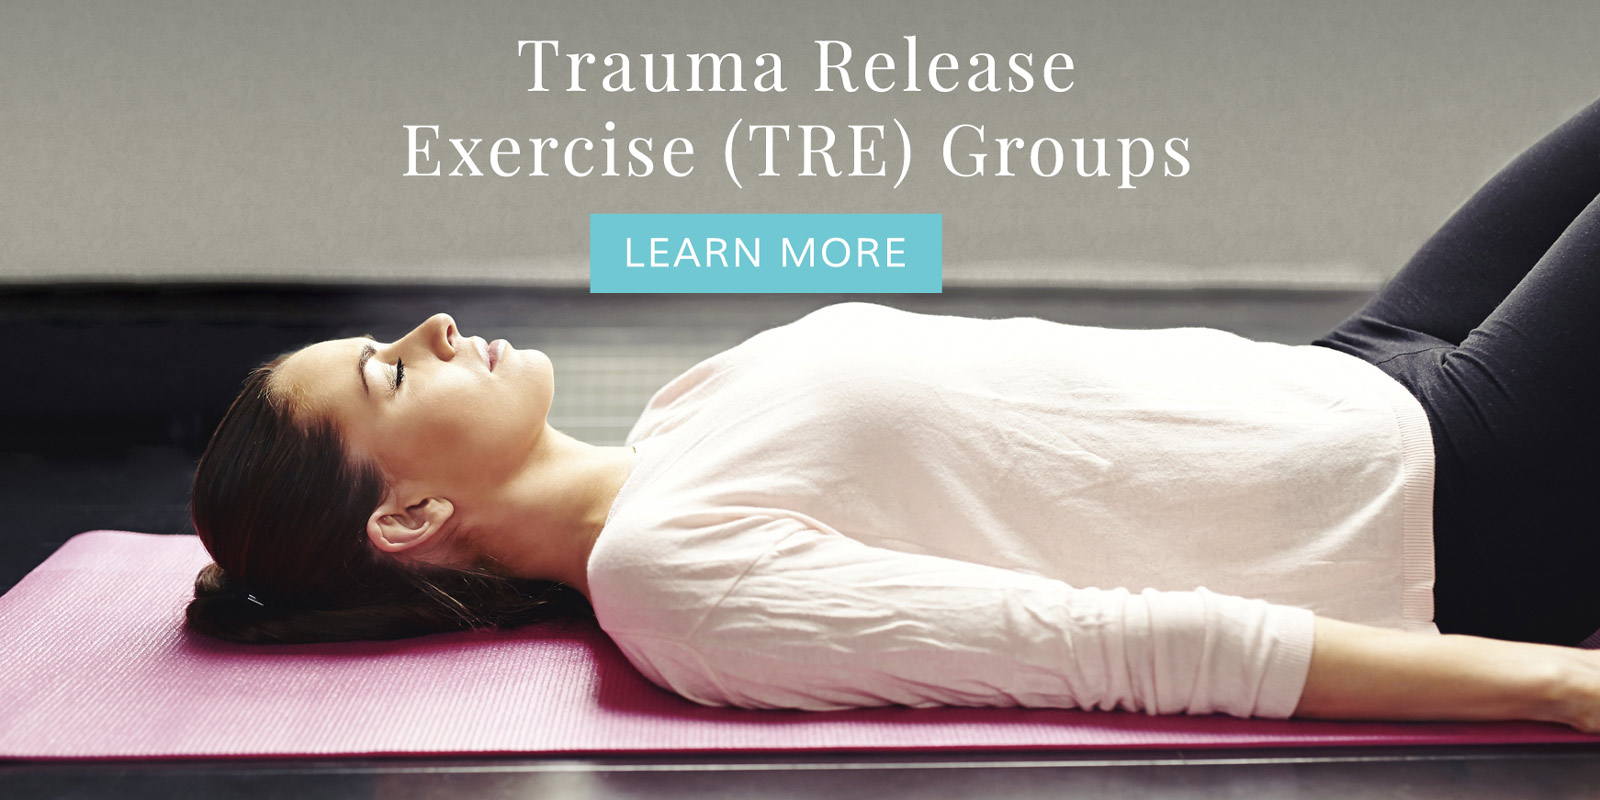 Trauma Release Exercise - TRE - Group Mesa, Gilbert, Arizona